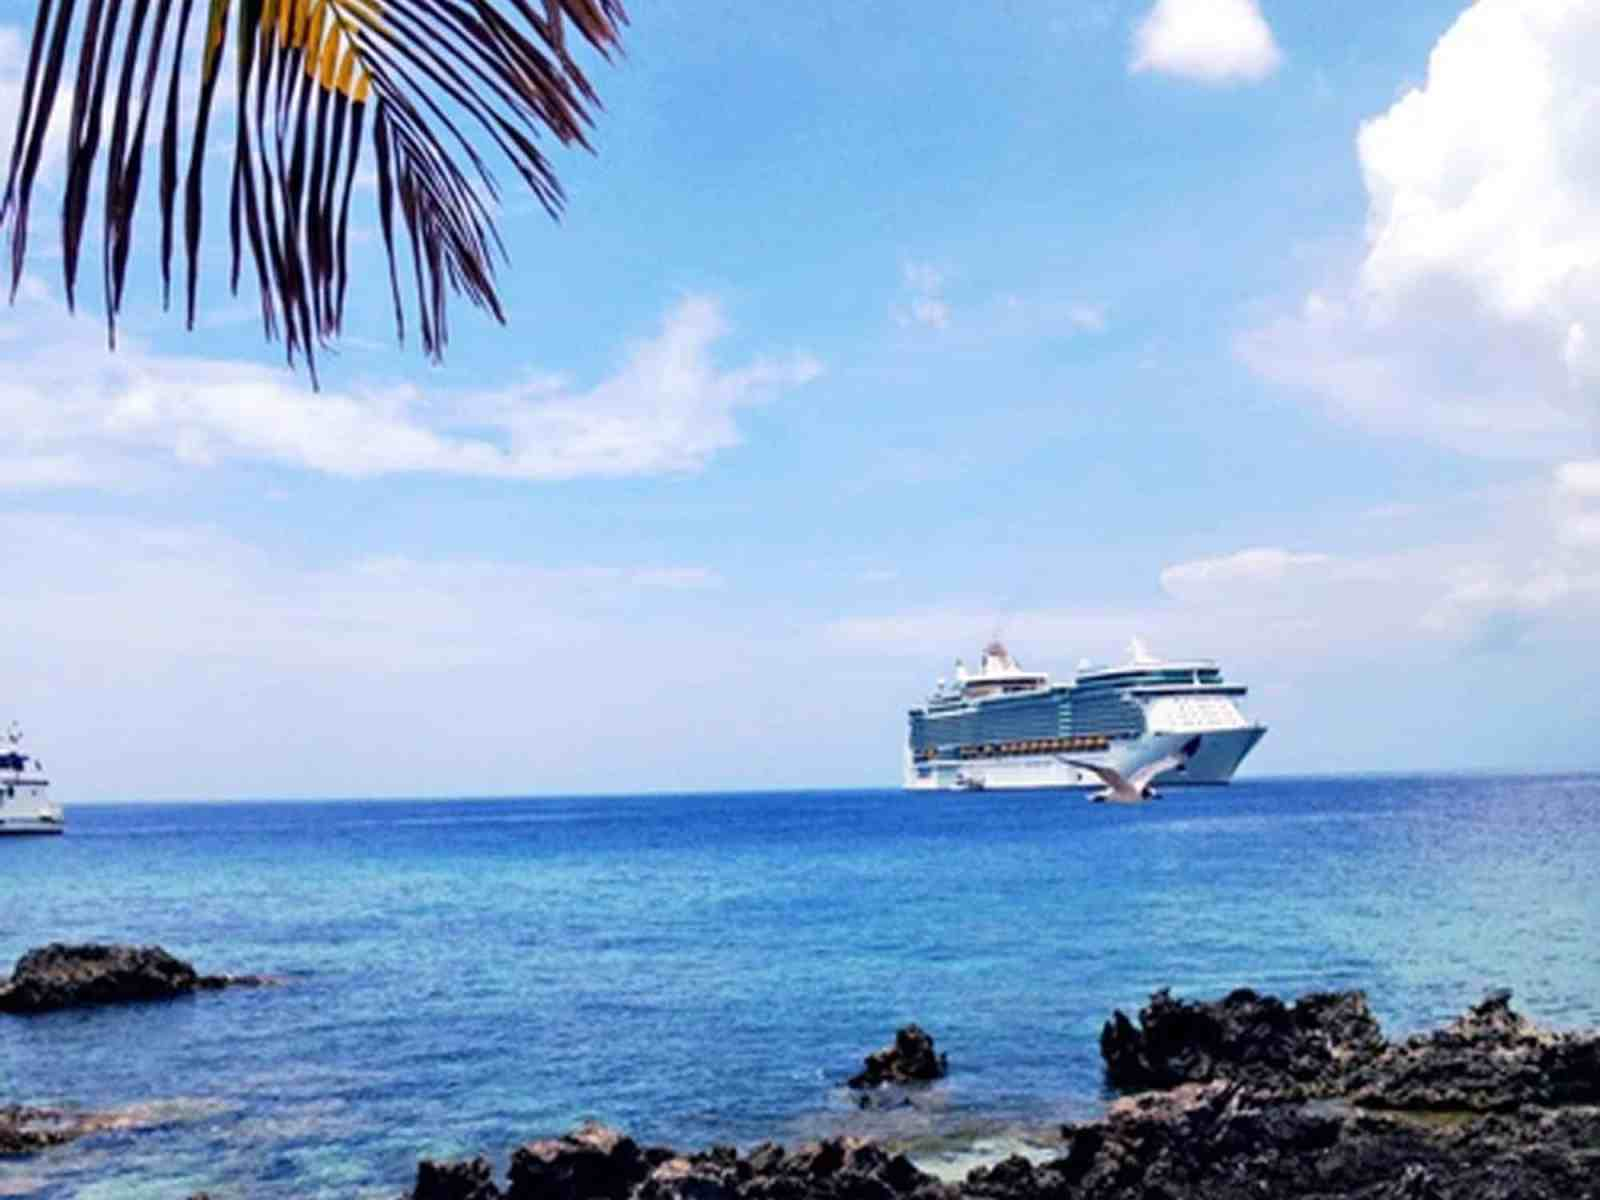 Let's call it a better-rounded look at all-inclusive cruises. If you already know you love cruise, that's great, cruise away, but if you are on the fence about wither they would be right for you, here's what to know about all inclusive cruises.